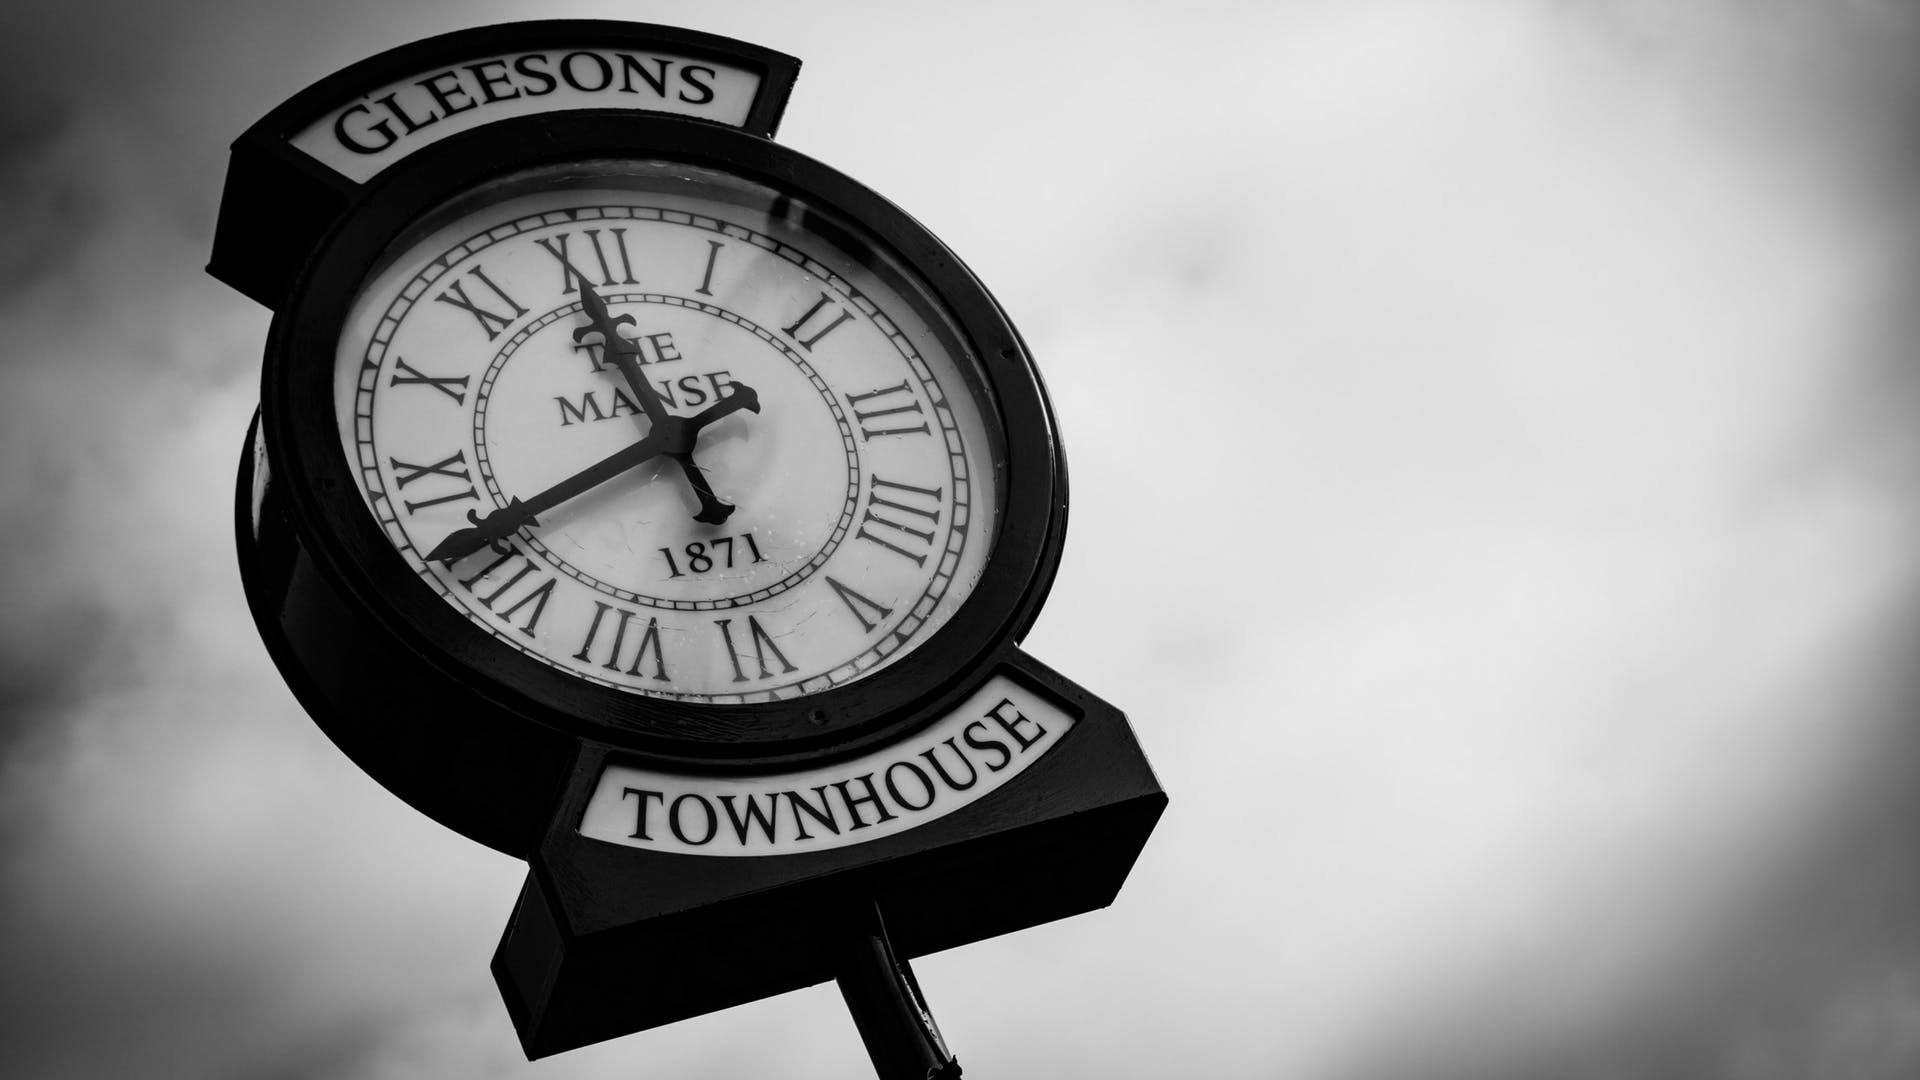 The iconic Manse clock outside Gleesons Restaurant & Rooms, Roscommon